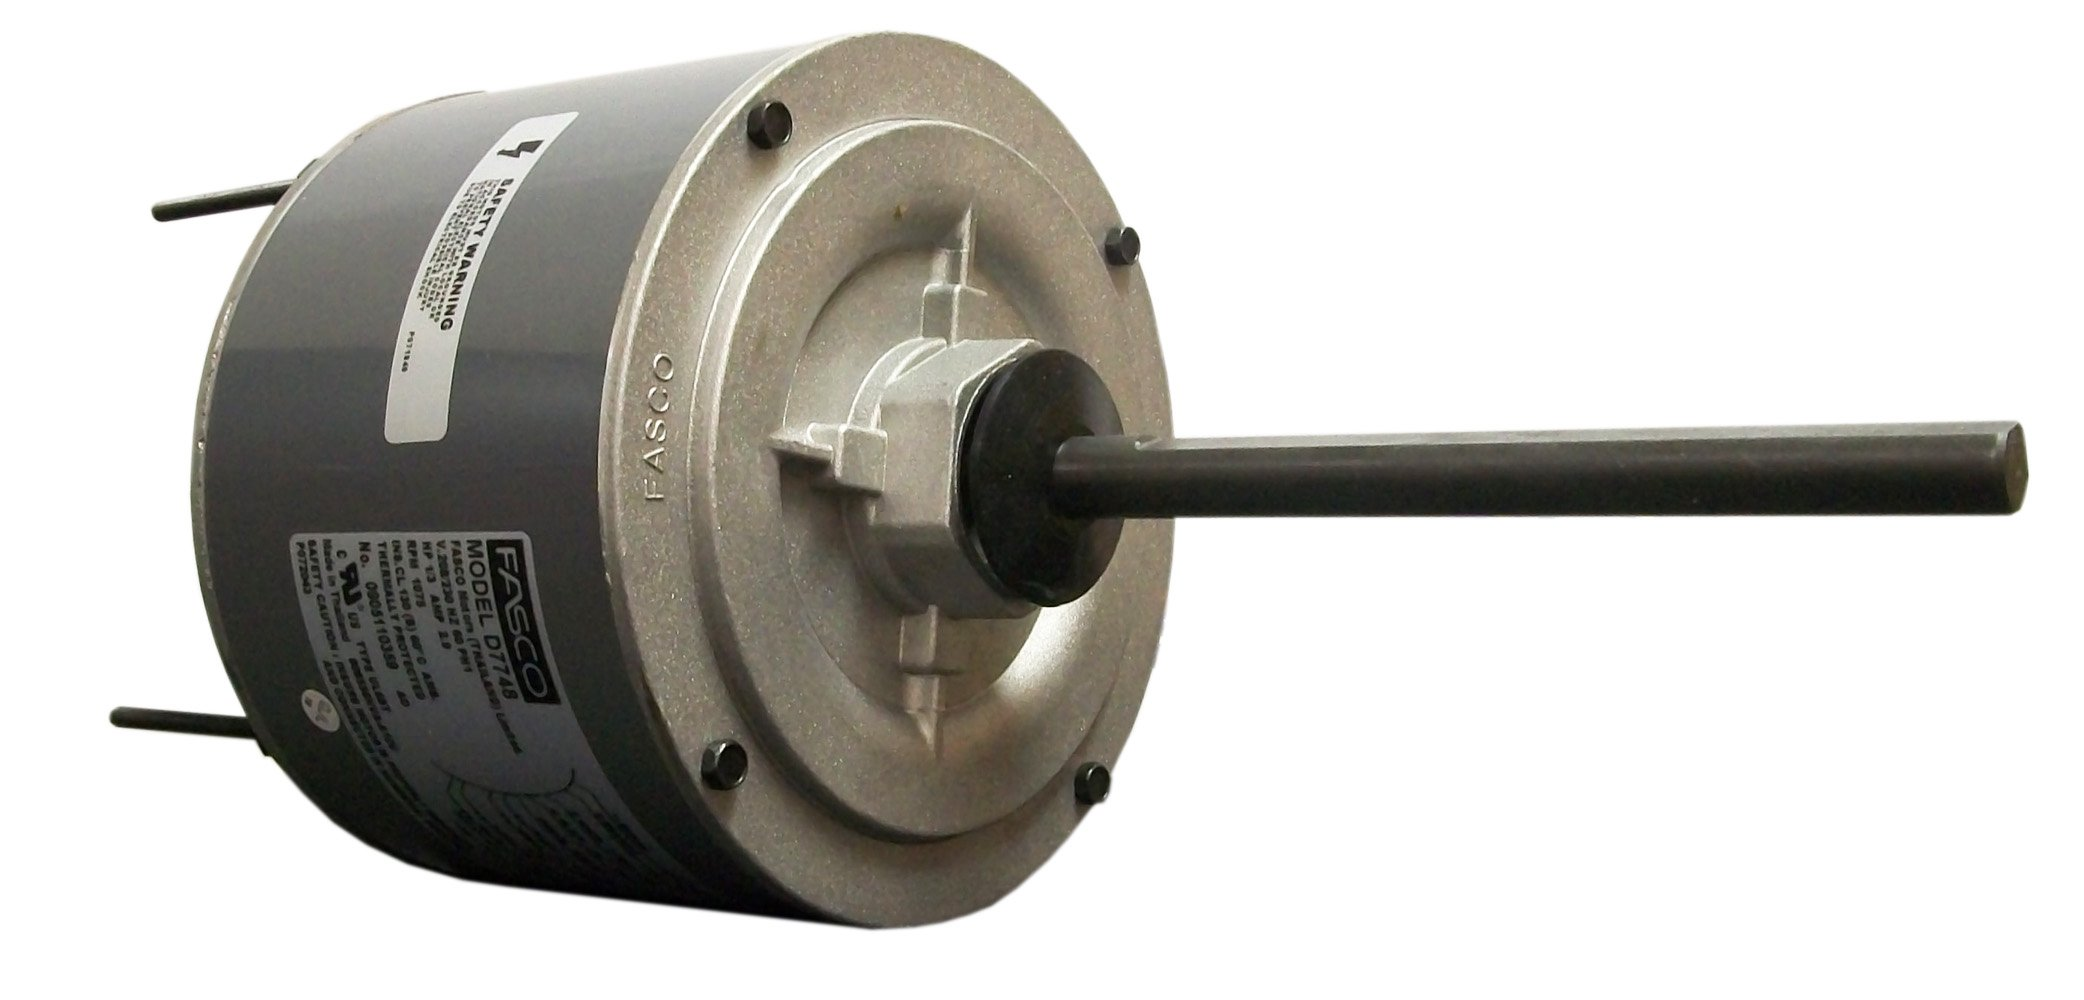 Fasco D7748 5.6-Inch Condenser Fan Motor, 1/3 HP, 208-230 Volts, 1075 RPM, 1 Speed, 2.9 Amps, OAO Enclosure, Reversible Rotation, Ball Bearing